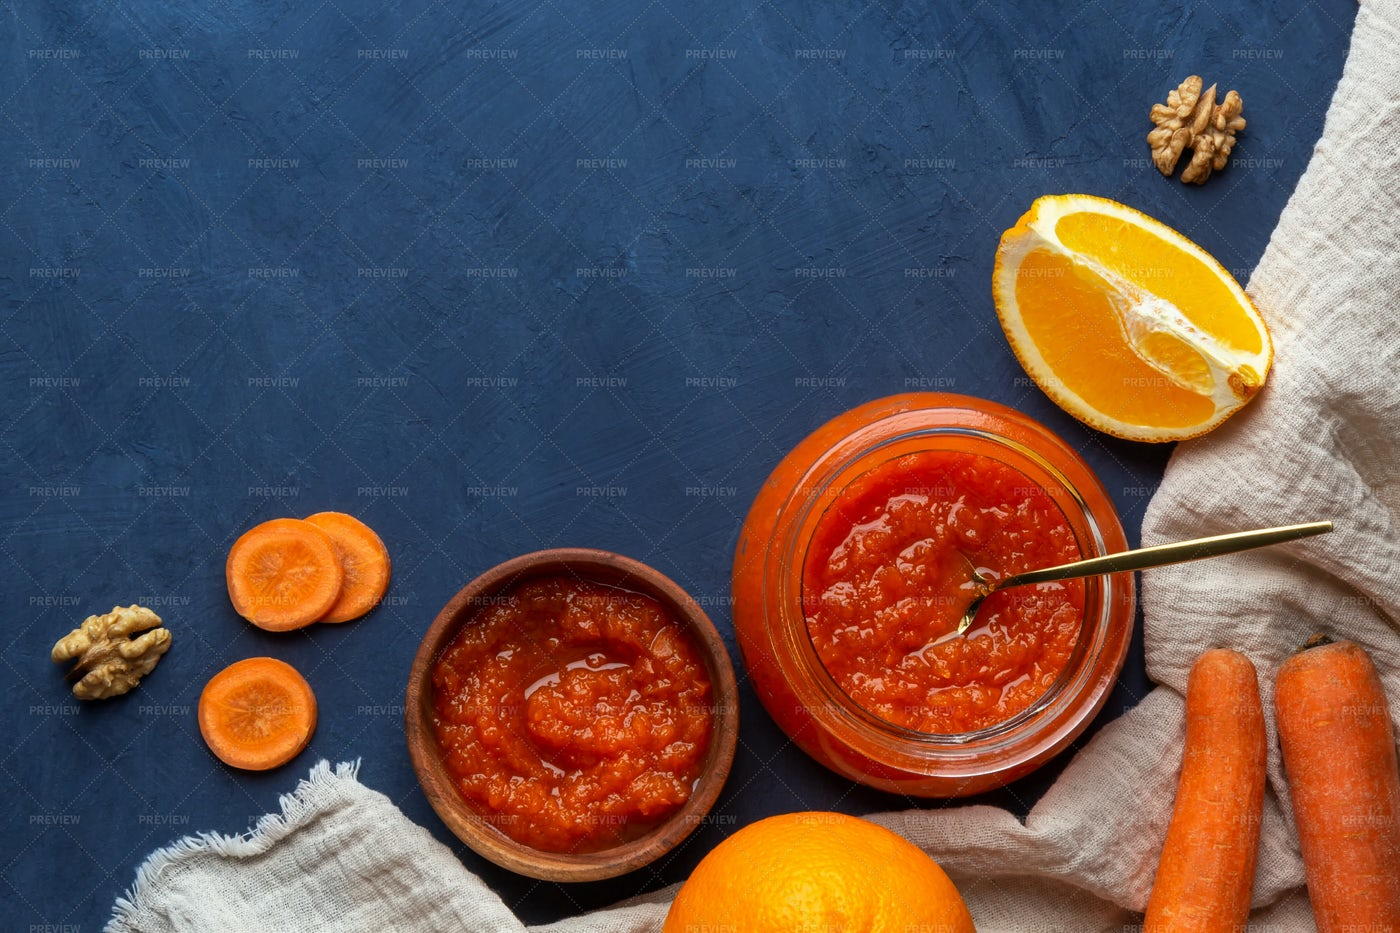 Carrot Jam And Ingredients: Stock Photos